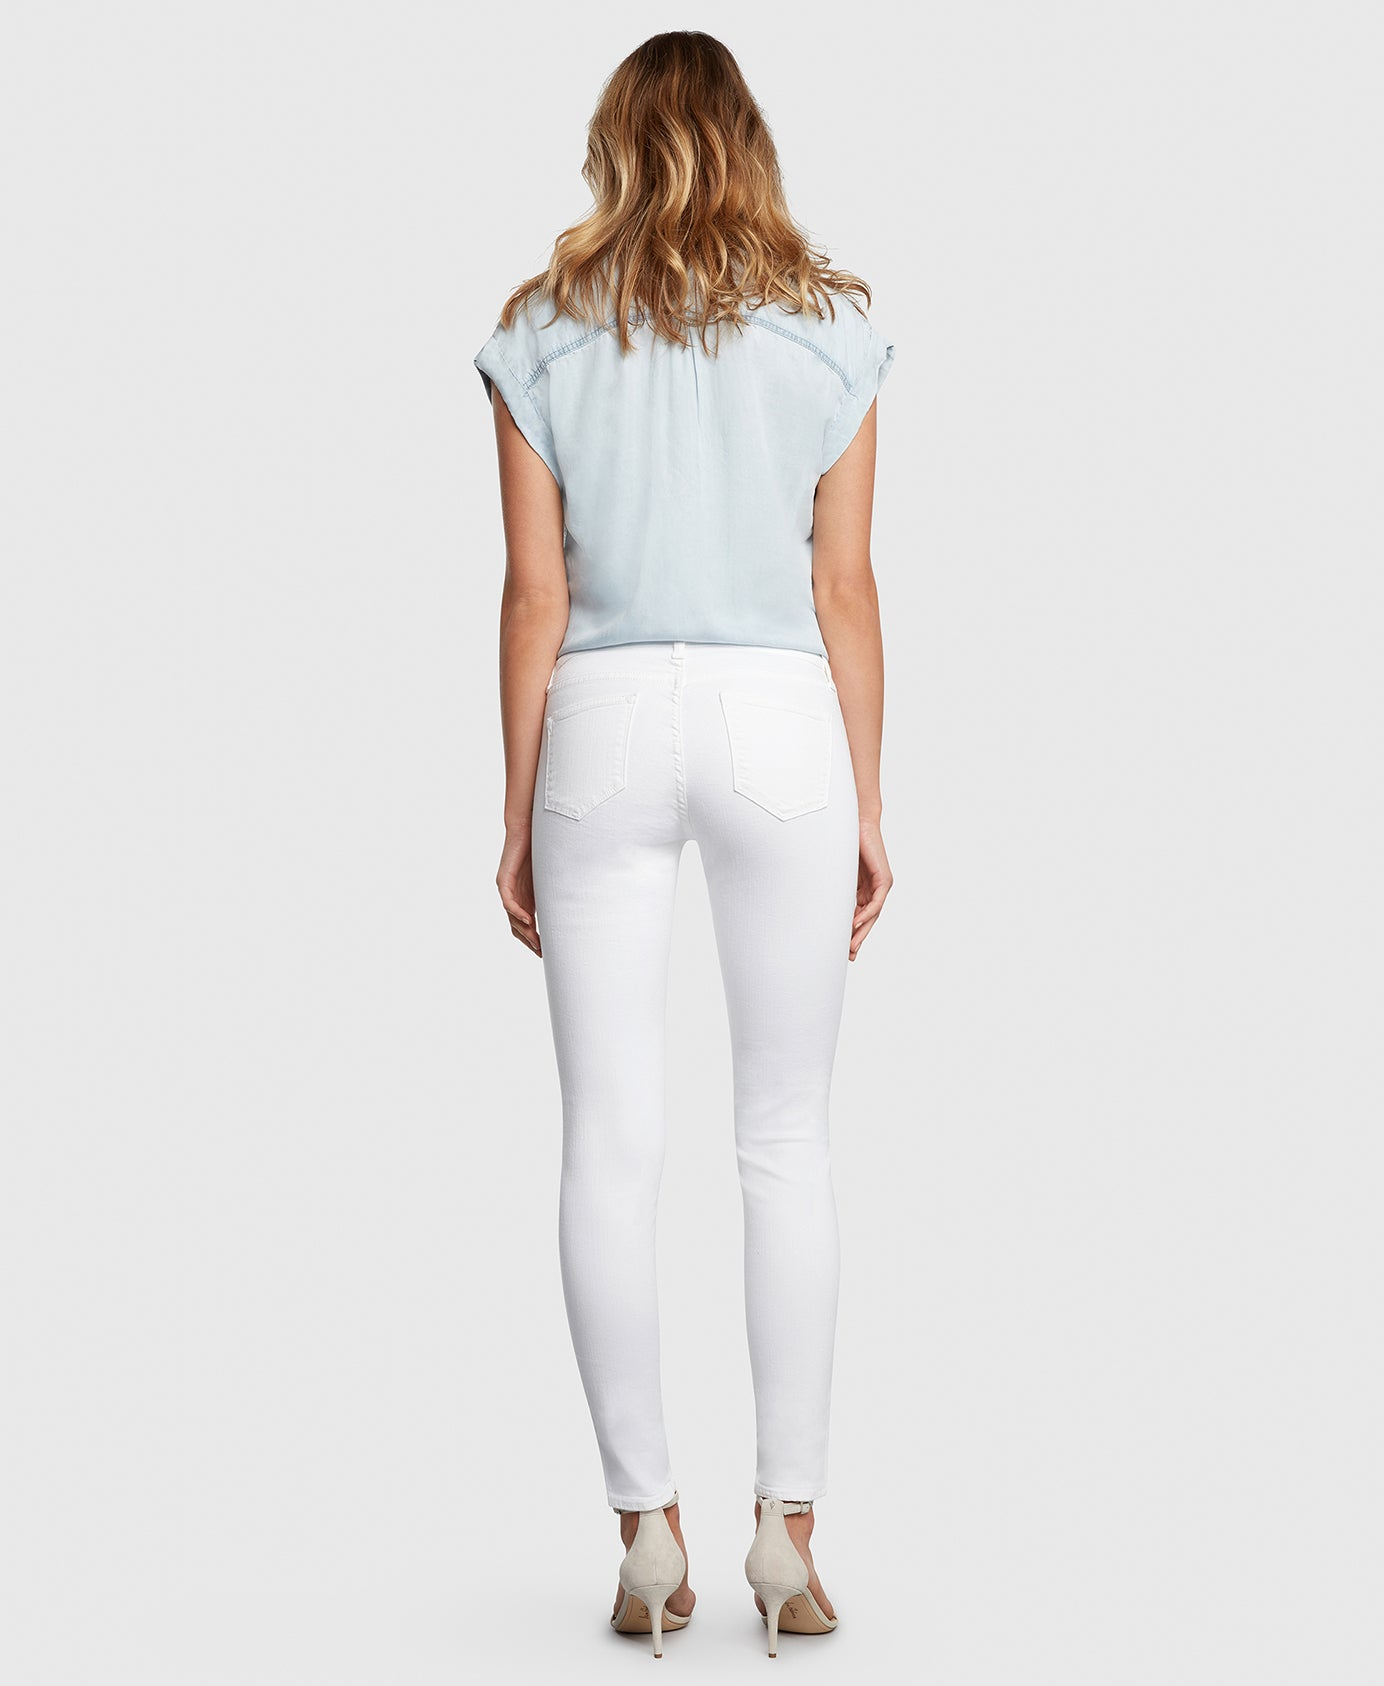 Principle DREAMER in White twill mid rise skinny jeans back